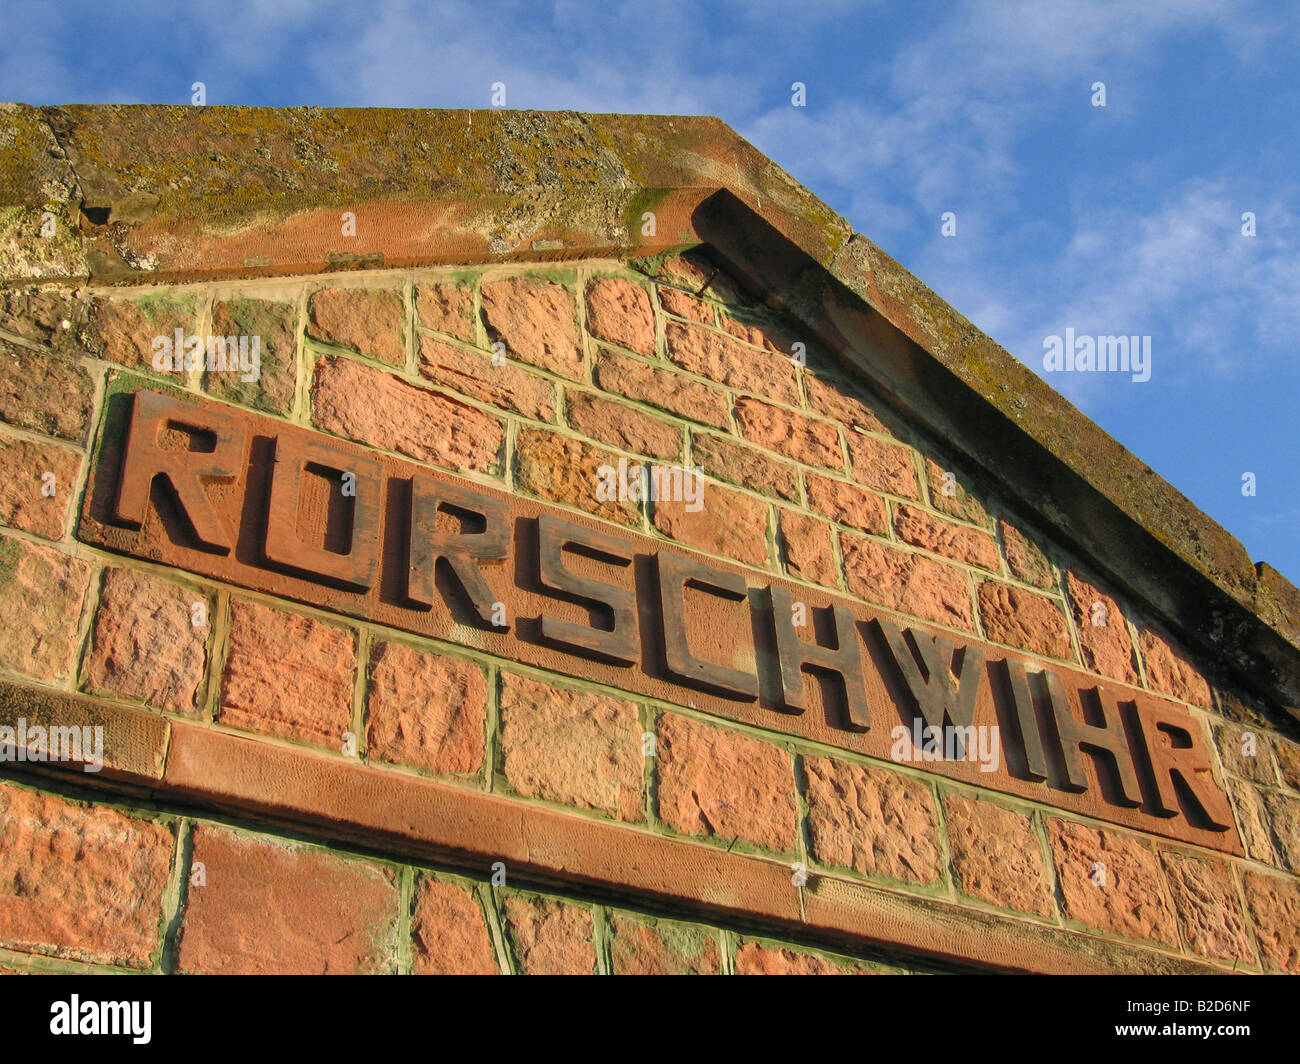 pediment into an alsatian vineyard - wine road - Rorschwihr - Alsace - France - Stock Image